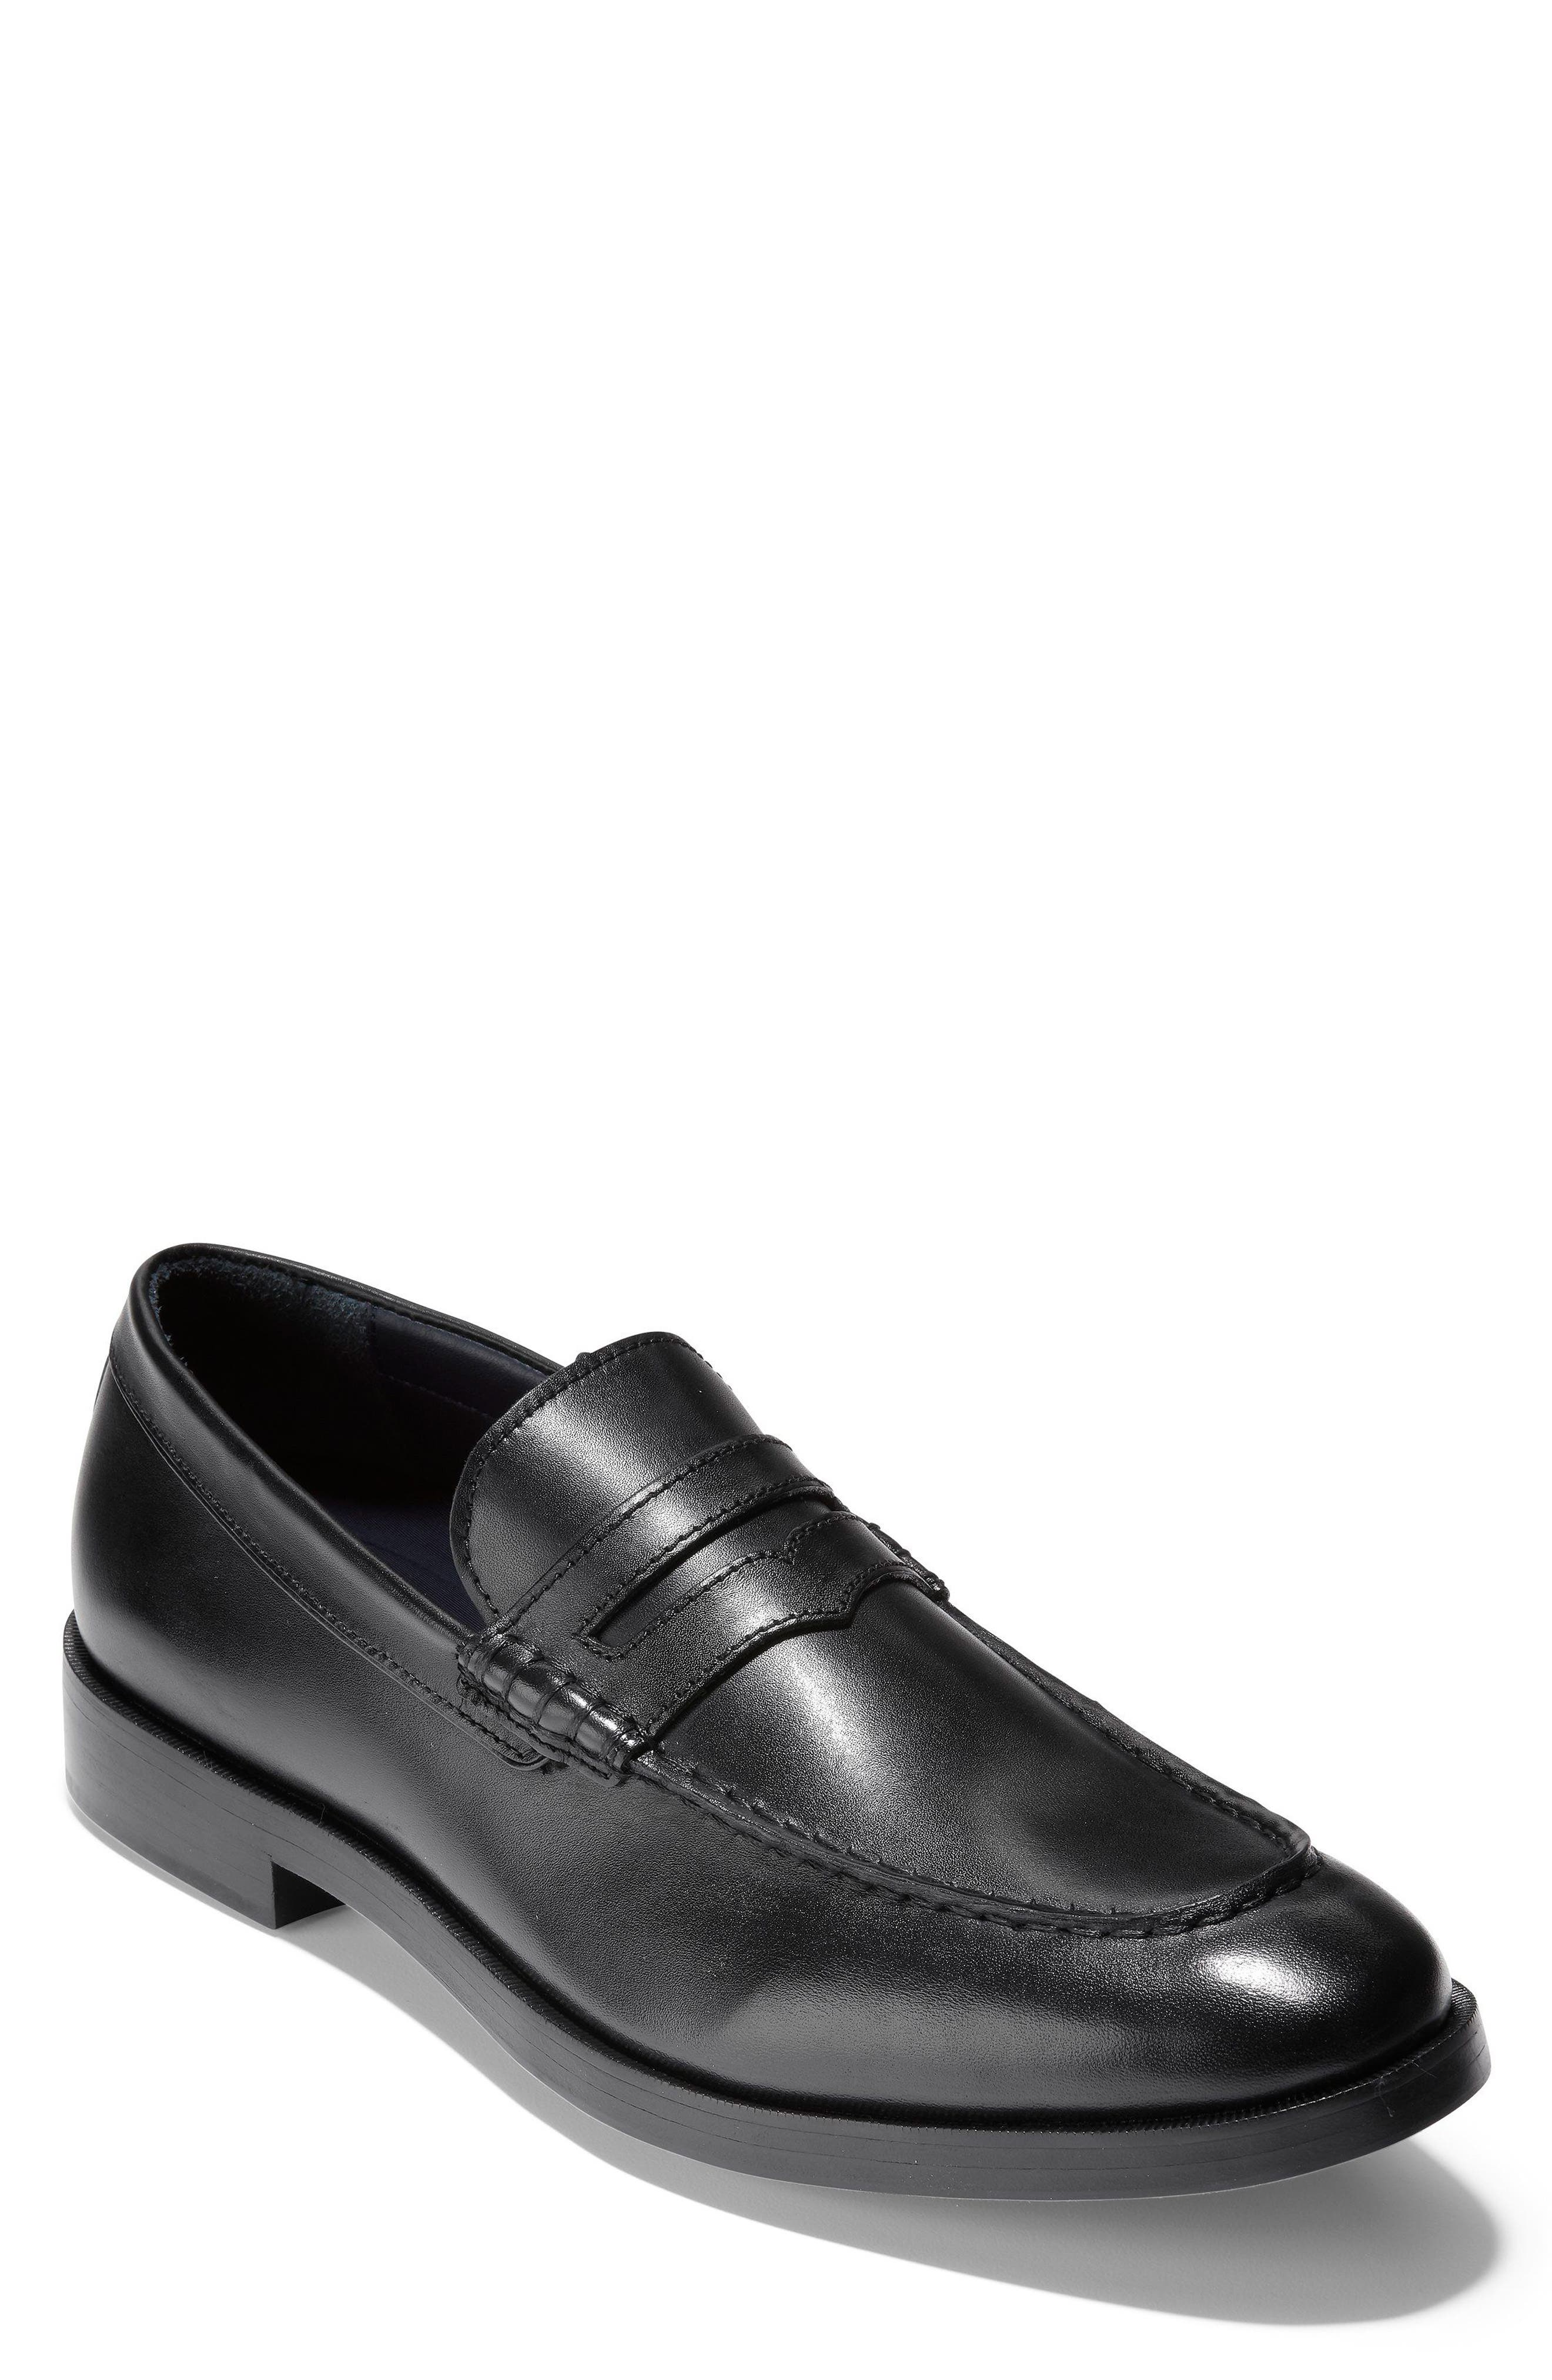 Hamilton Grand Penny Loafer,                         Main,                         color, 001